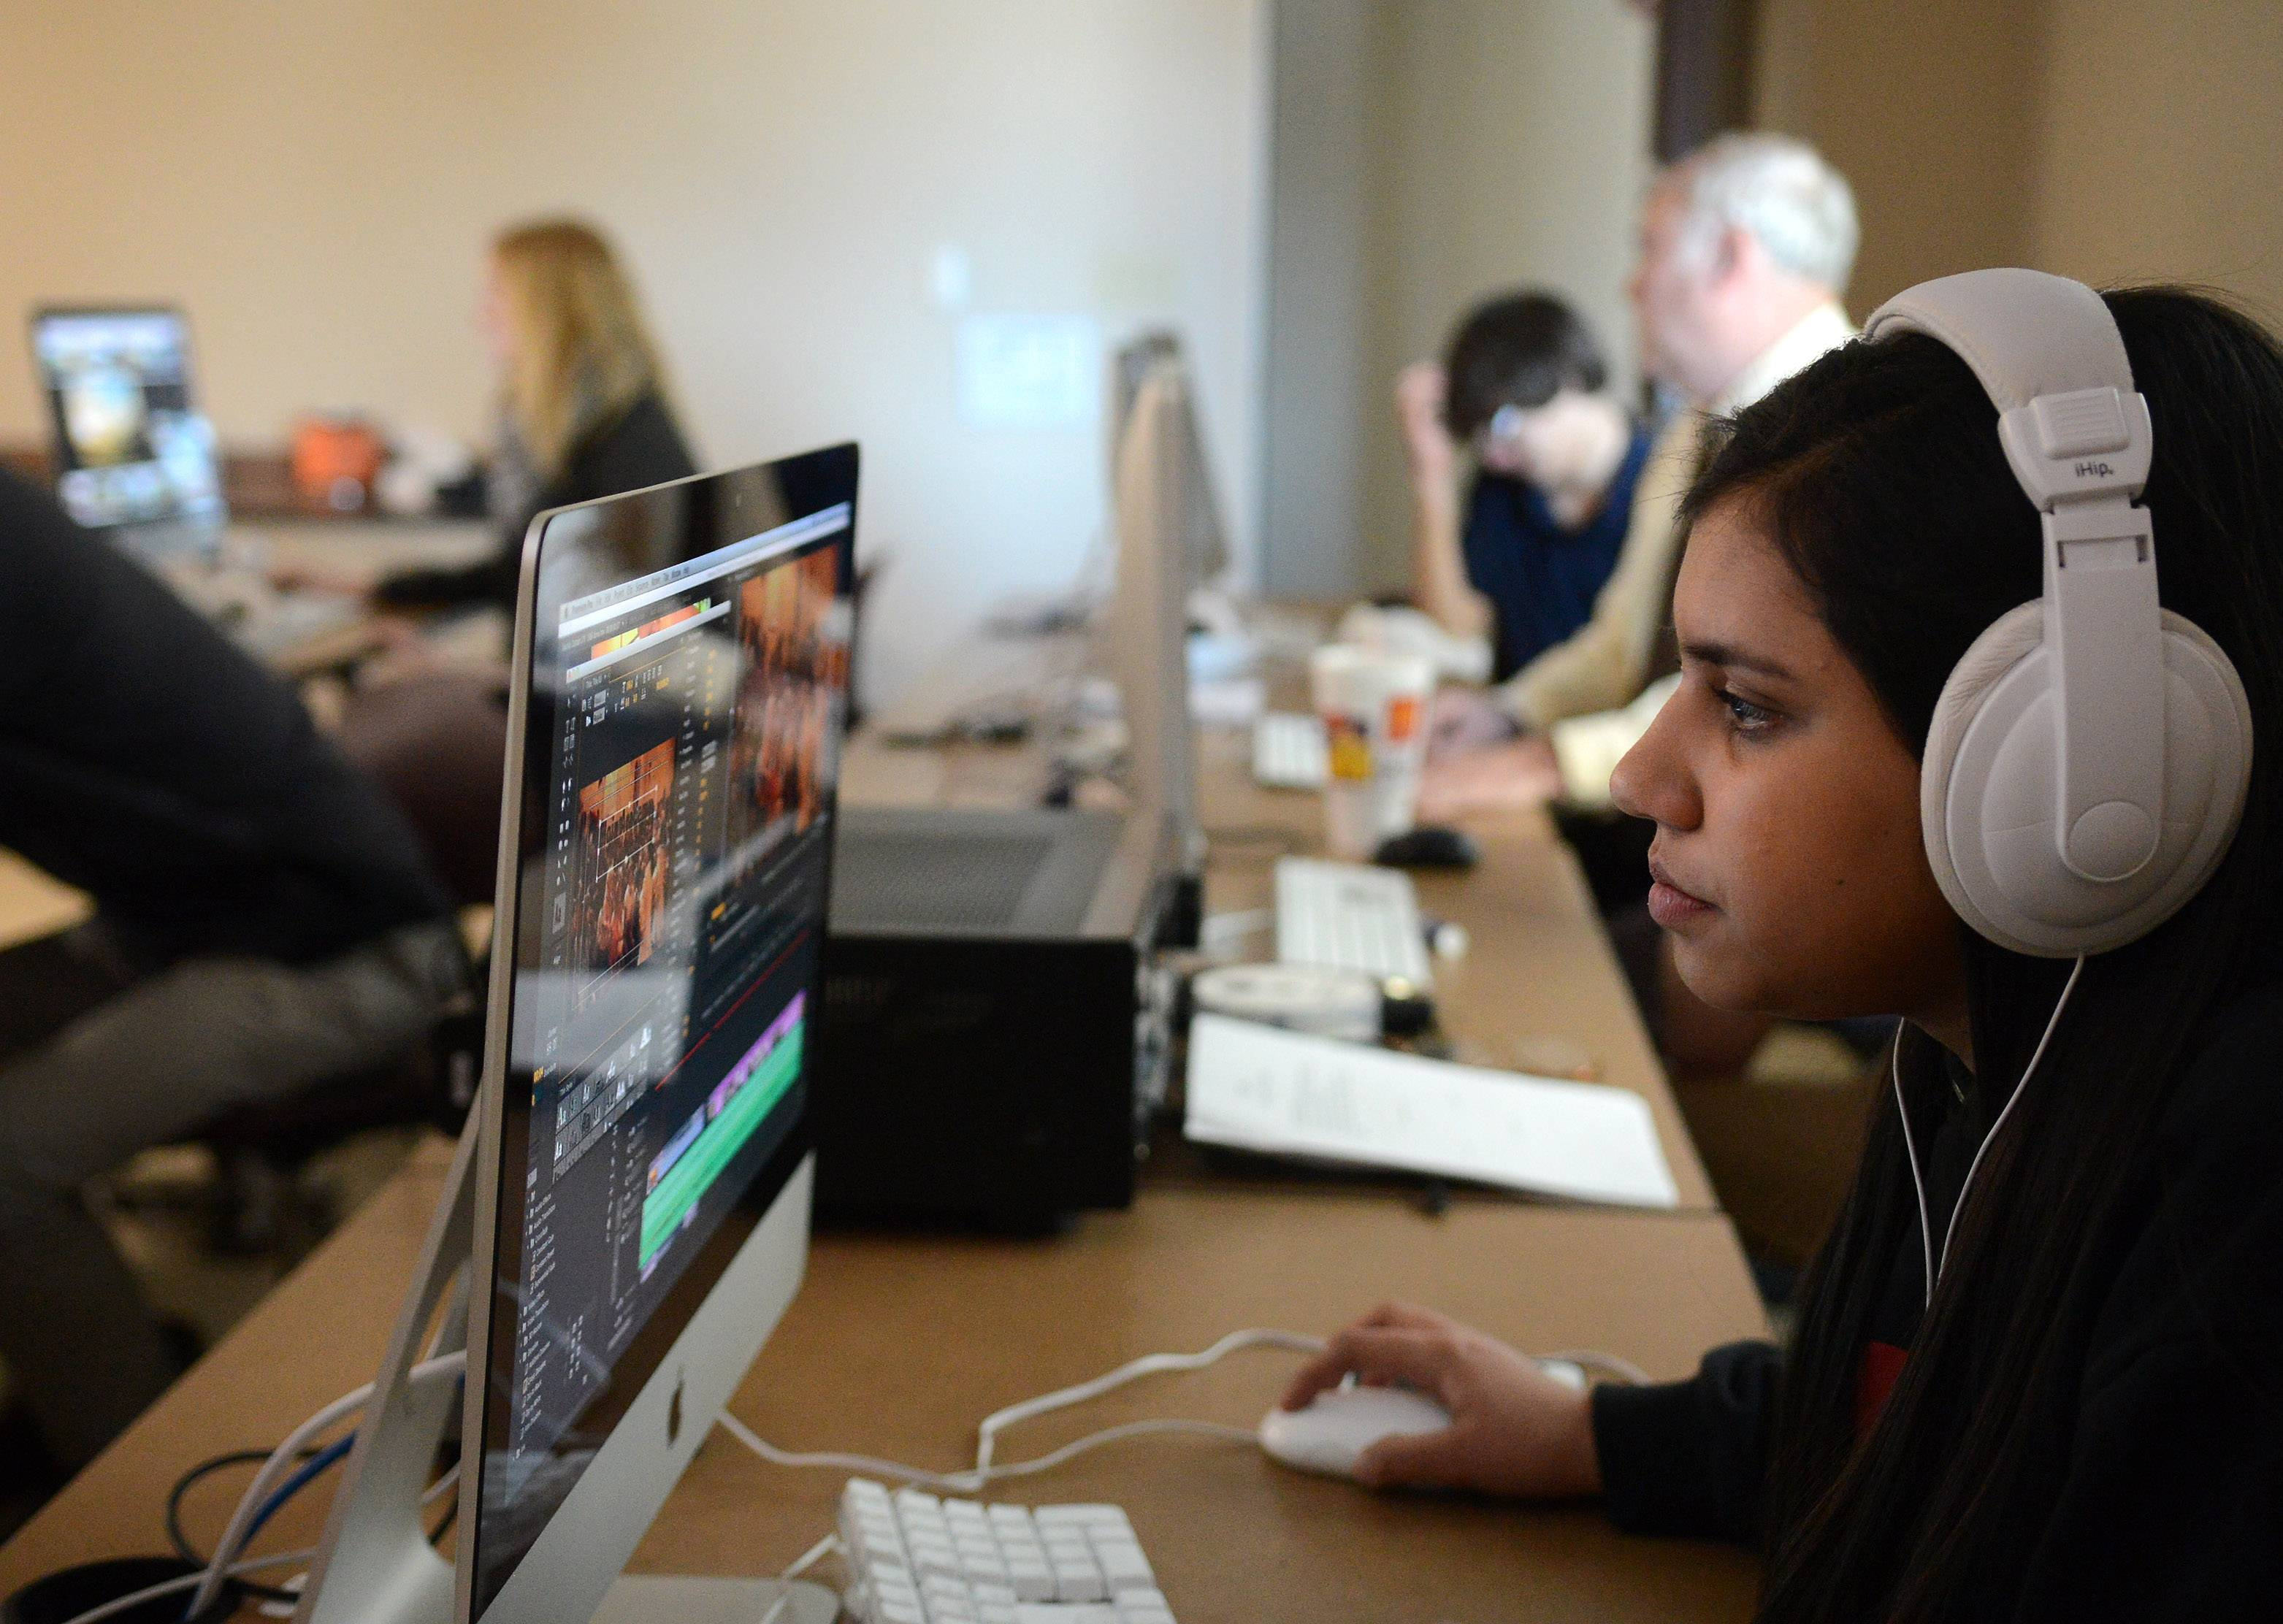 Elgin Academy junior Zainab Abbasi edits a project in her videography class. The school this month marks the 175th anniversary of its charter.